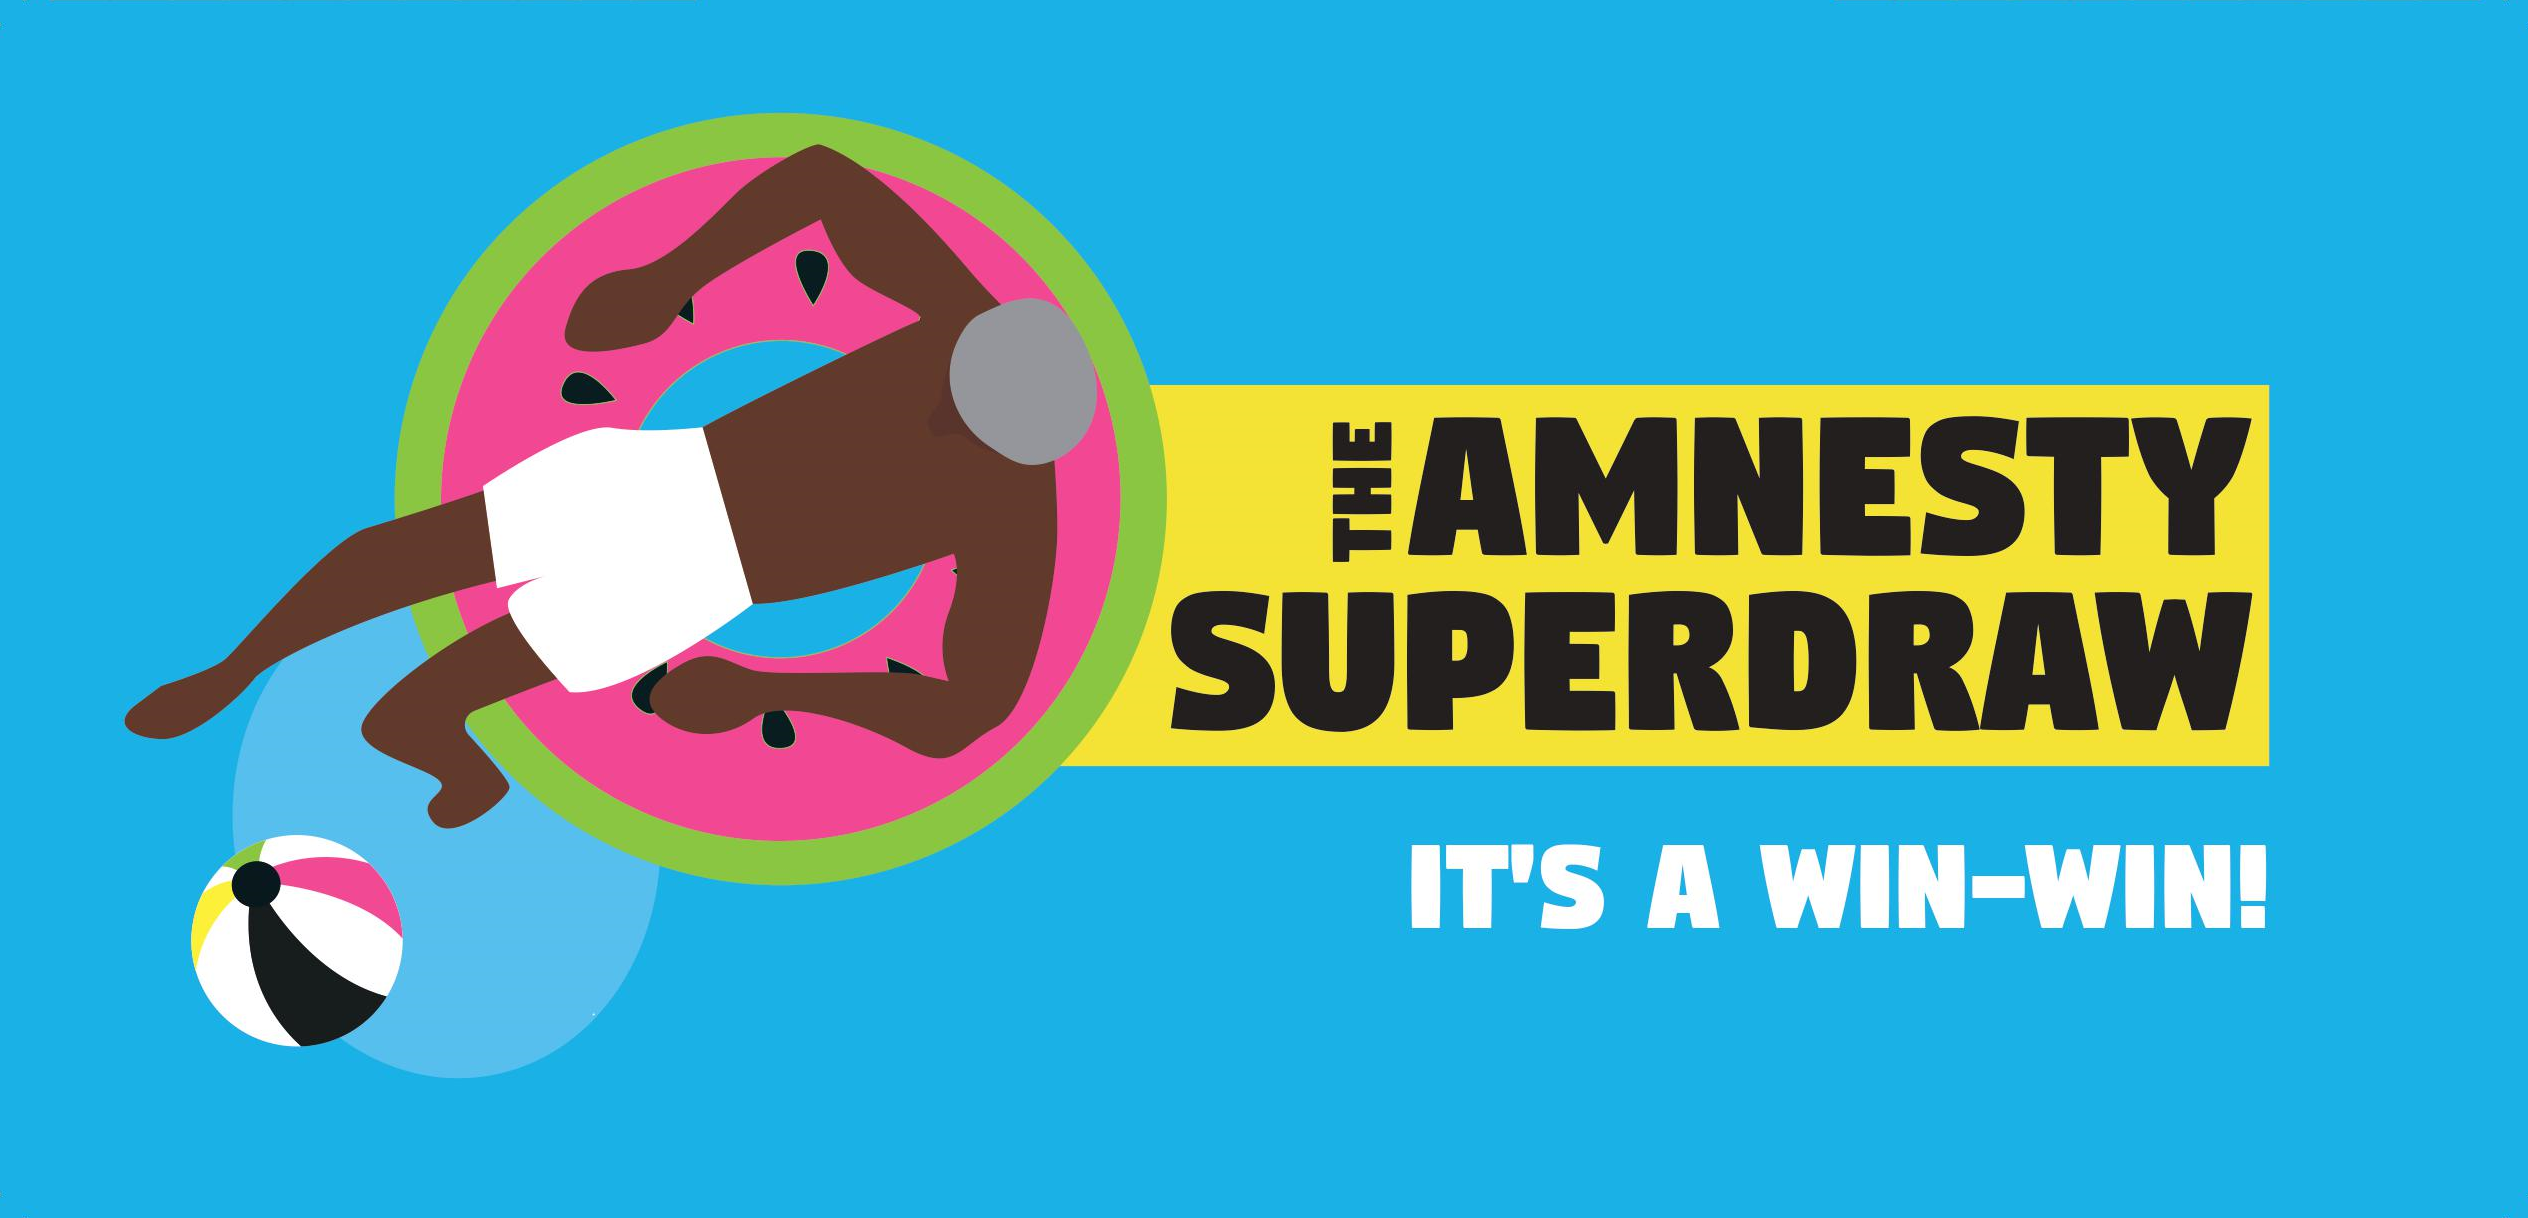 Play the Amnesty Superdraw. It's a win-win!